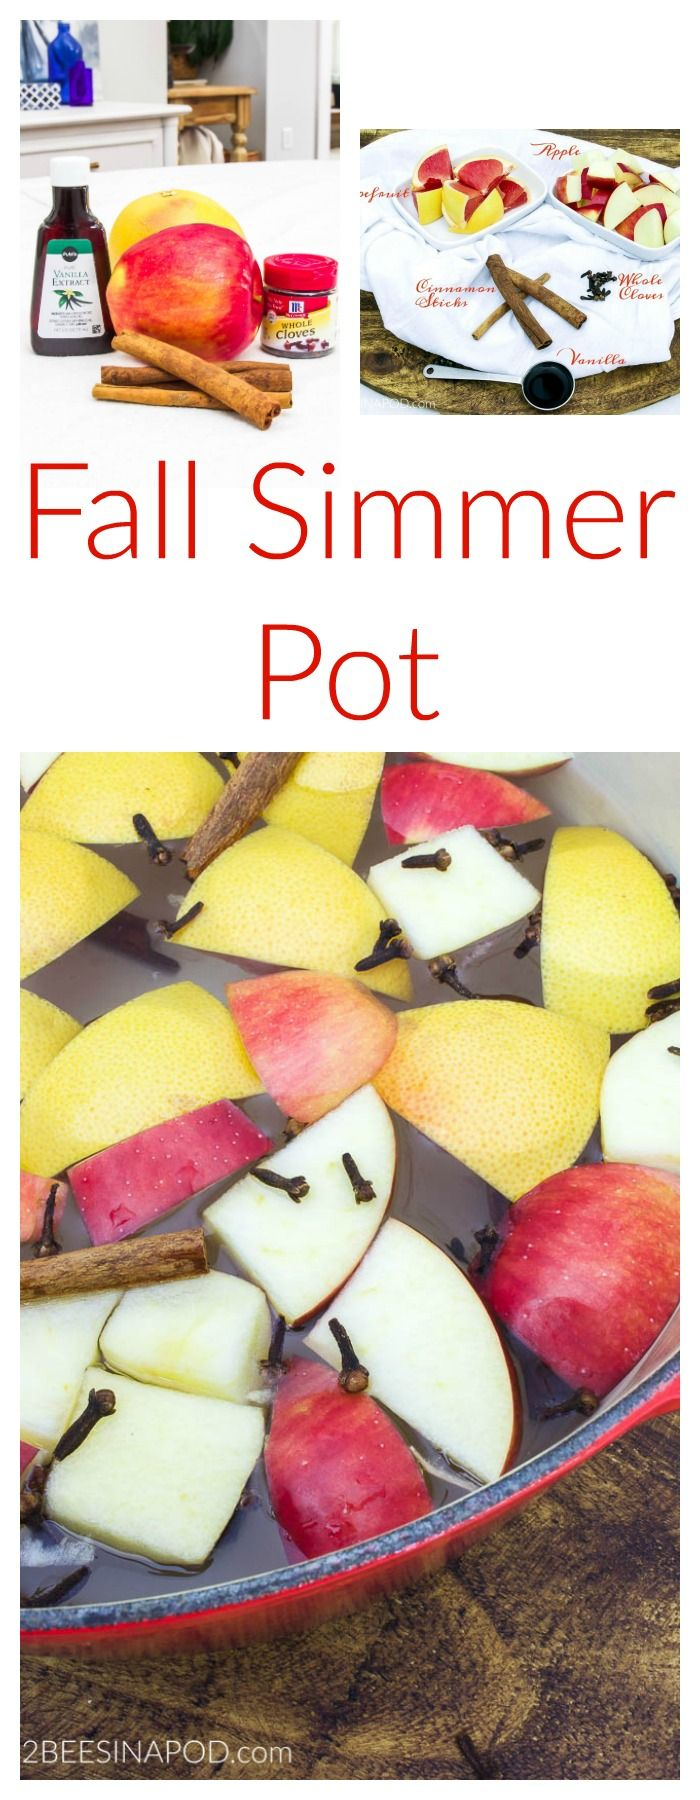 Fragrant Fall Simmer Pot. Make the entire house smell fabulous for fall with scents of spice, apples, citrus and vanilla with this easy simmer pot. Stove top simmer pot for fall or winter.